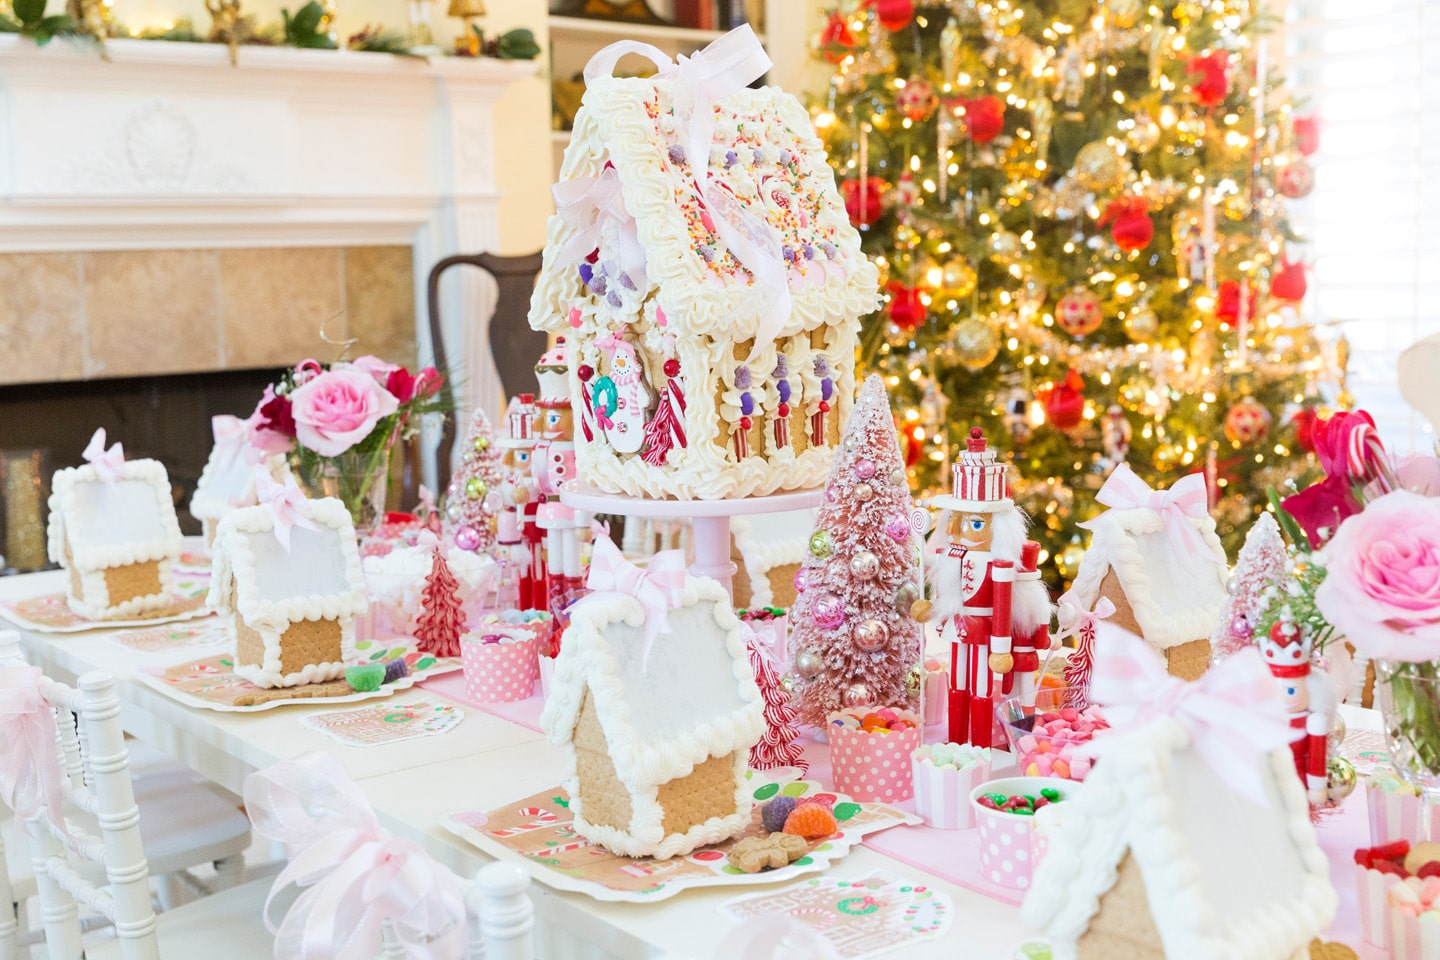 gingerbread-house-tea-party-2017-11.jpg